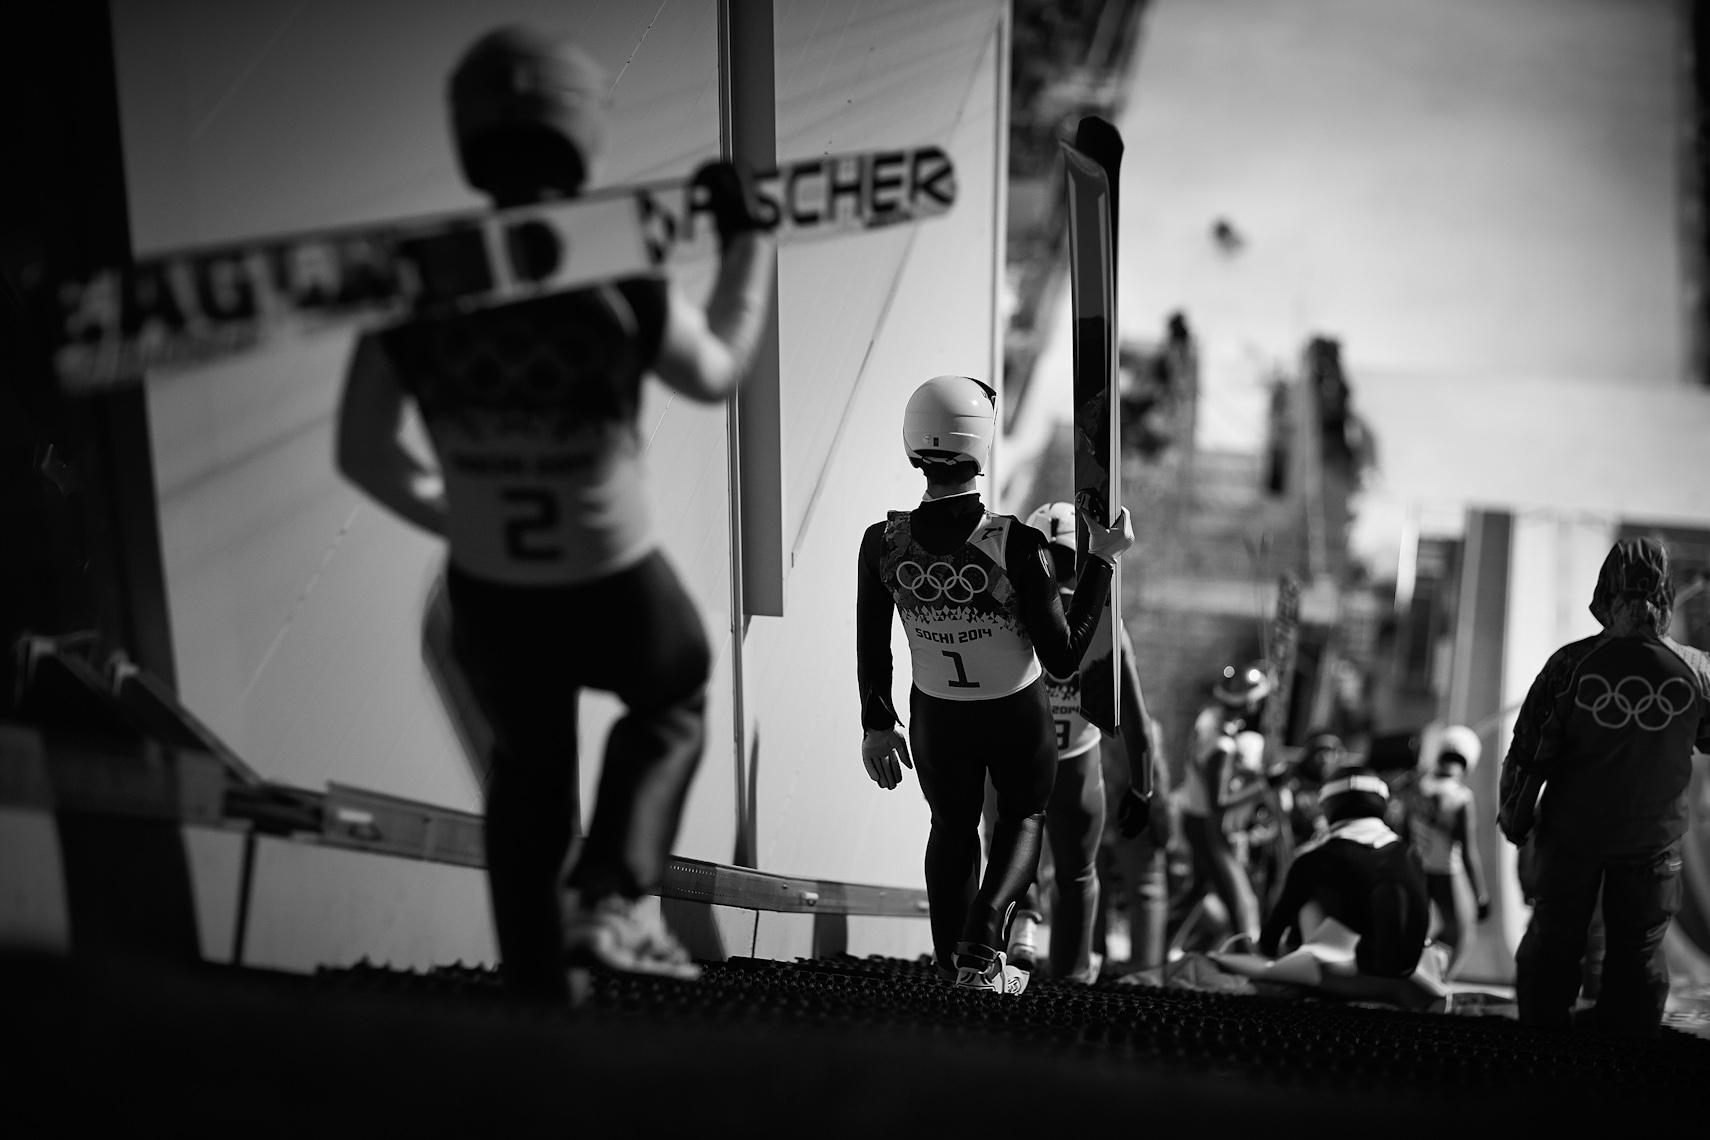 2-JohnHuet_Olympics_Winter